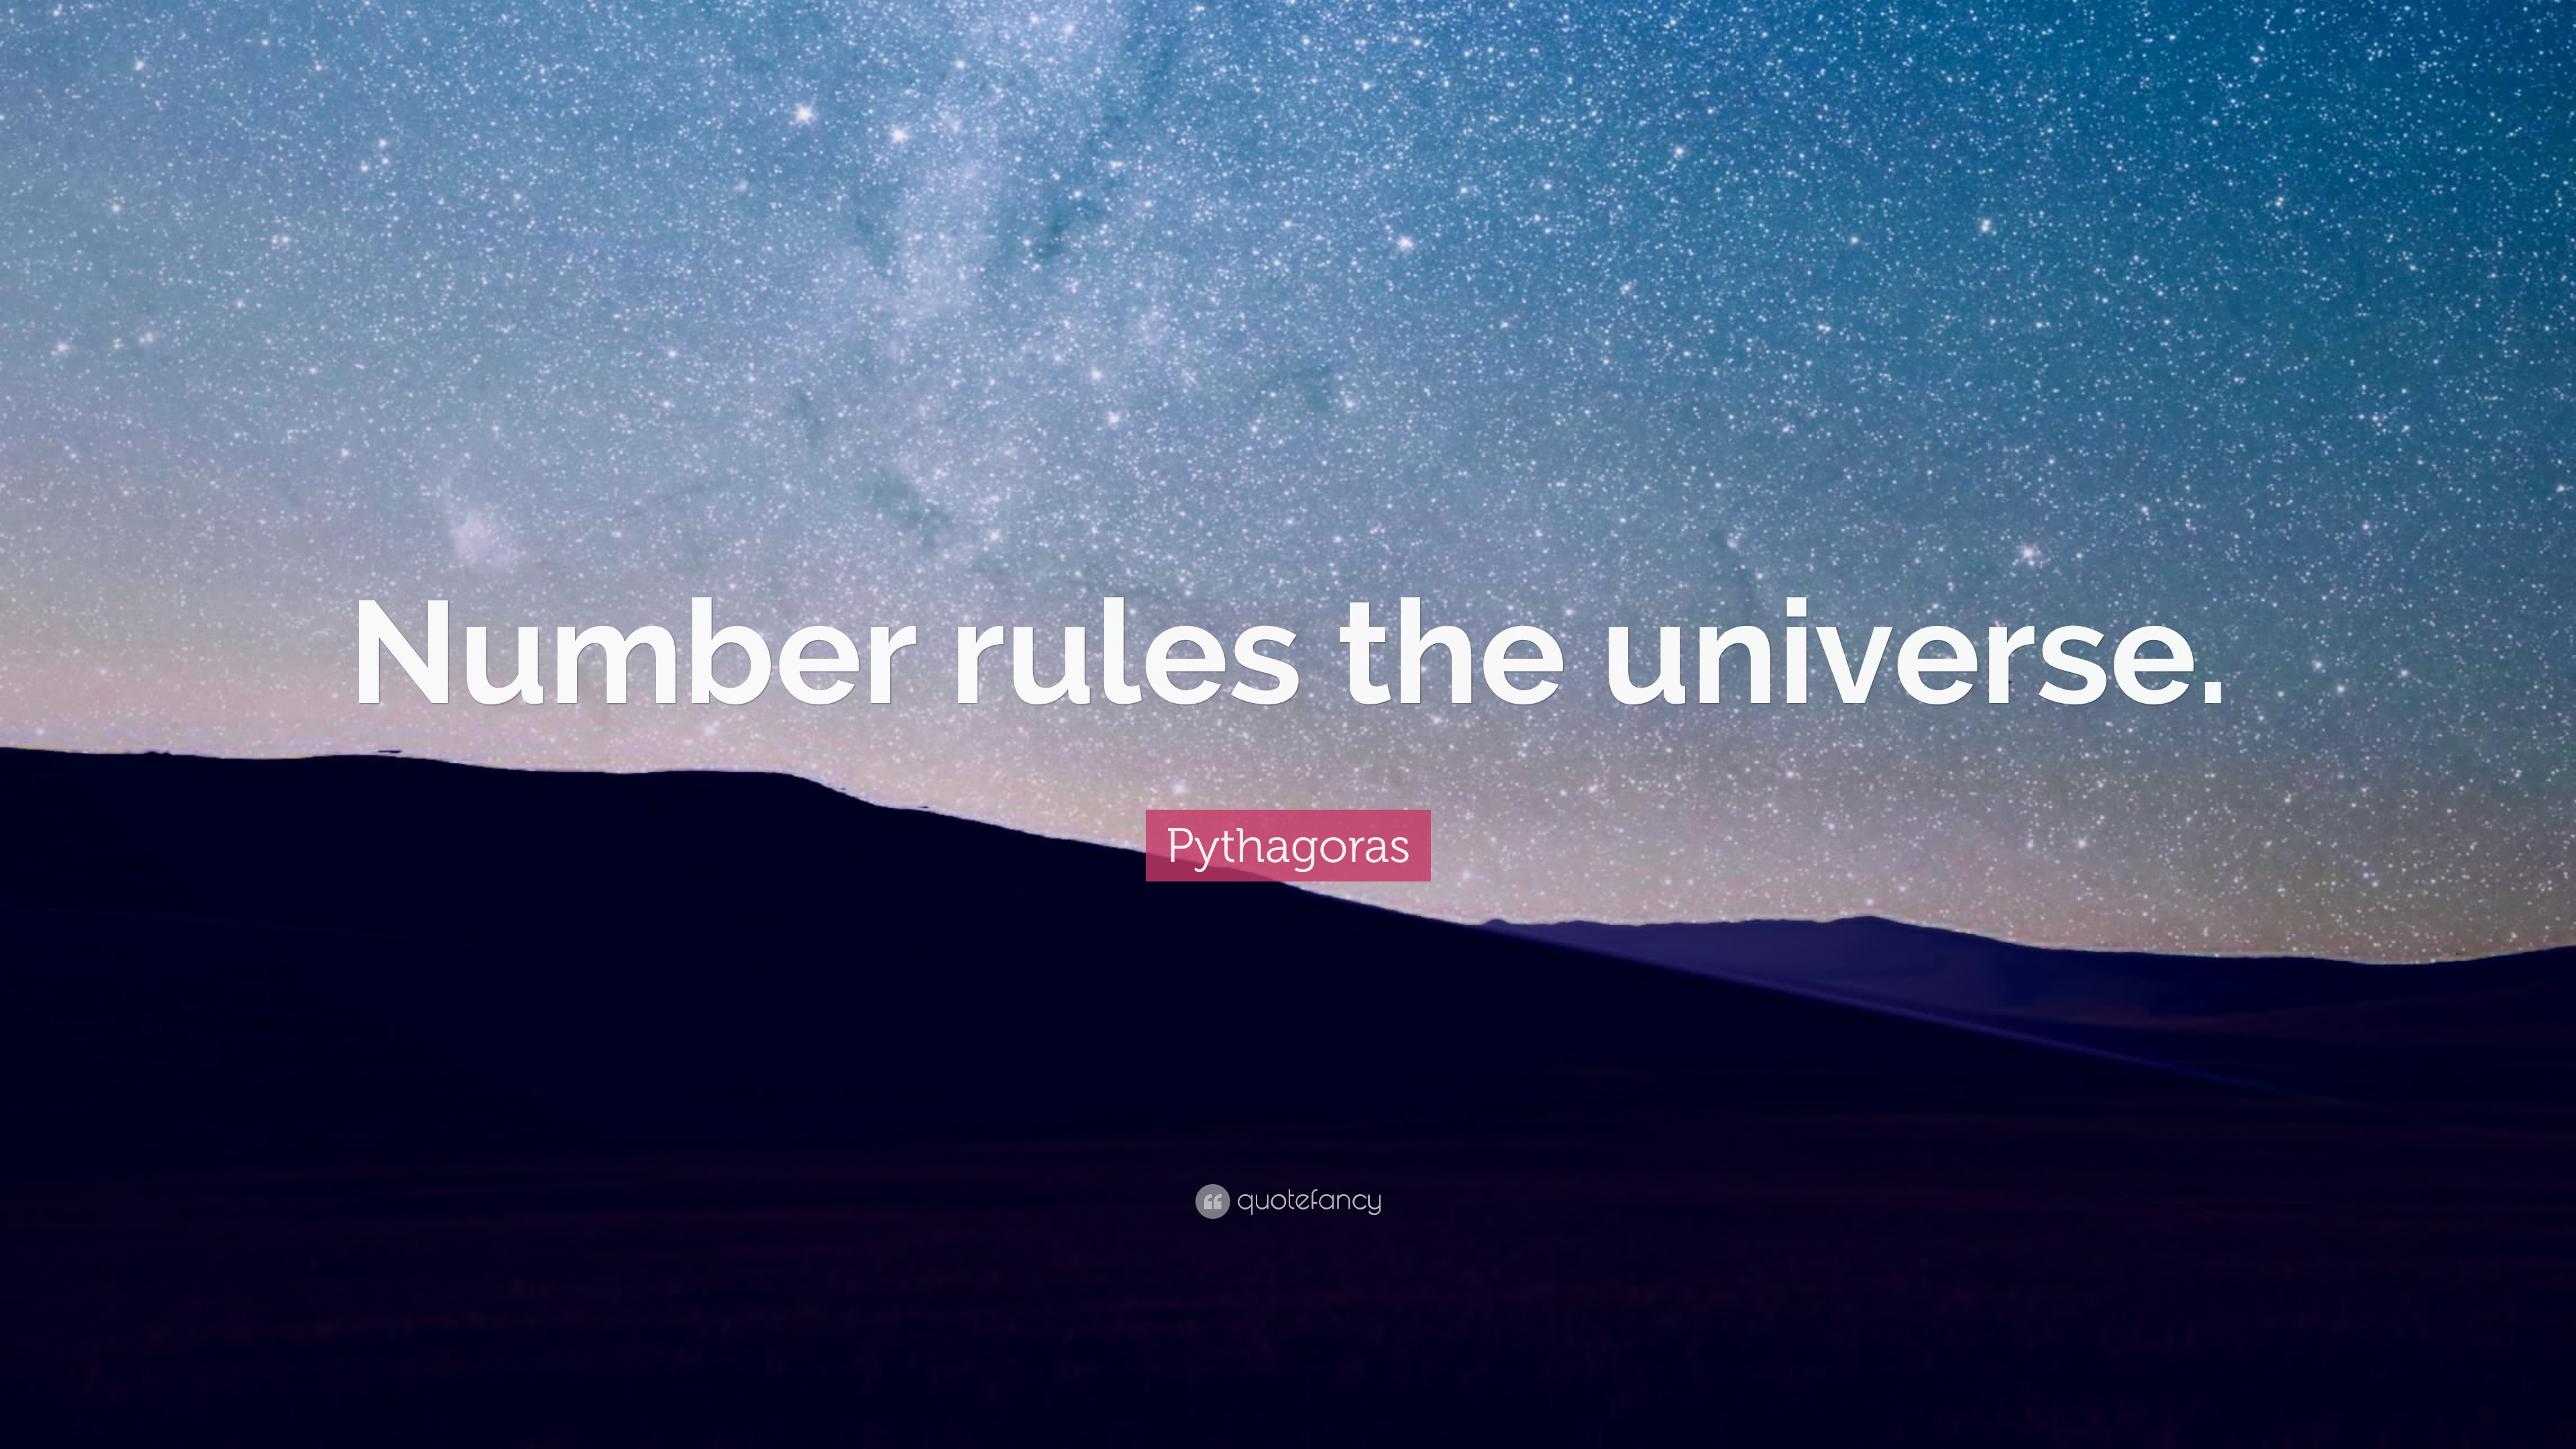 pythagoras a universe made of numbers Pythagoras was born on the island of samos his view of the universe was probably very simple: and also begin the abstraction of mathemetics to the pythagoreans, real numbers were the most important thing, and numbers make up the world.